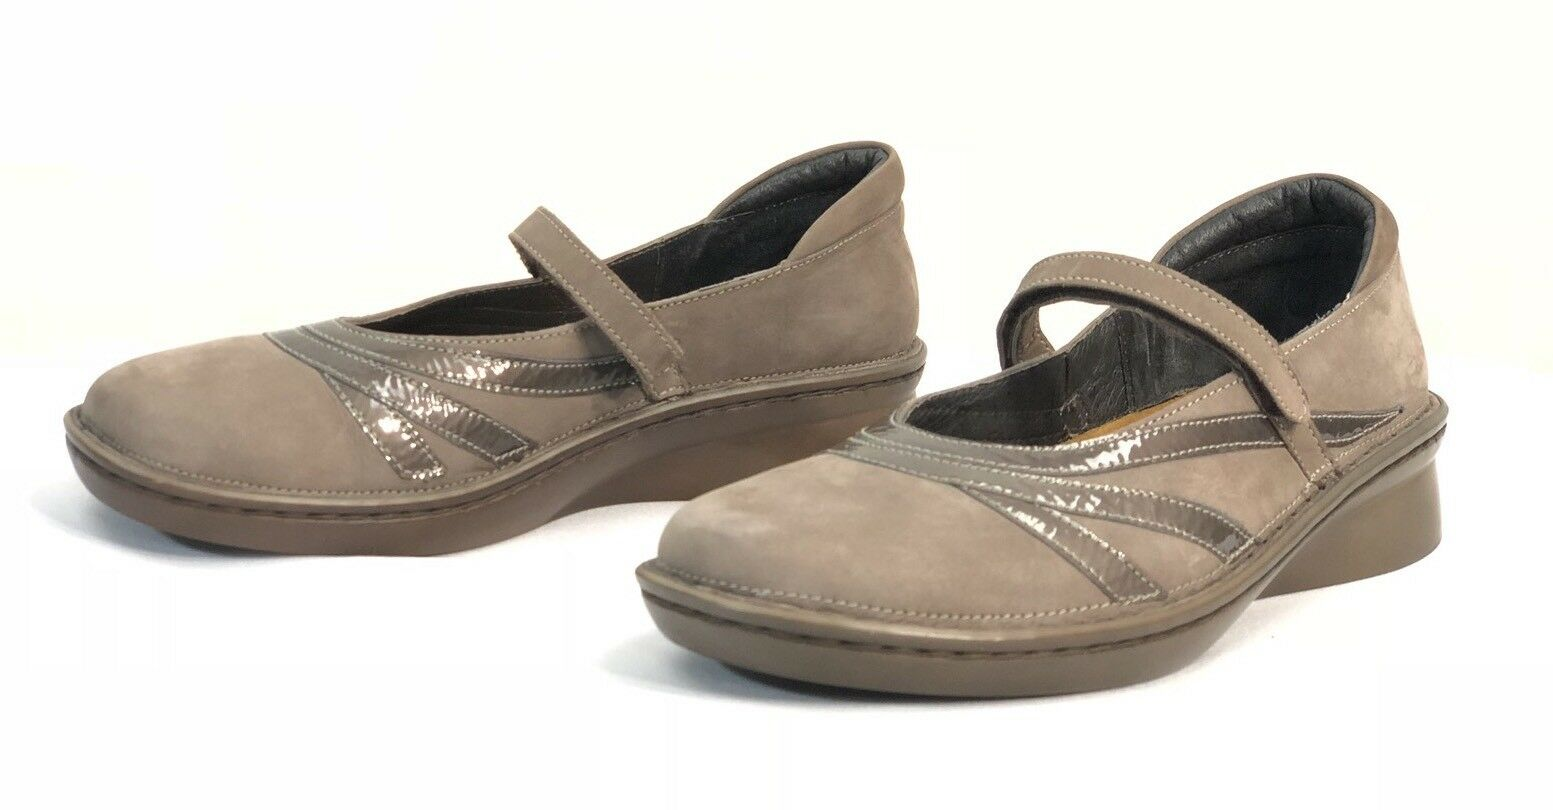 Naot femmes Taupe Suede Mary Janes Sandals Taille EU 39 US 8 Excellent